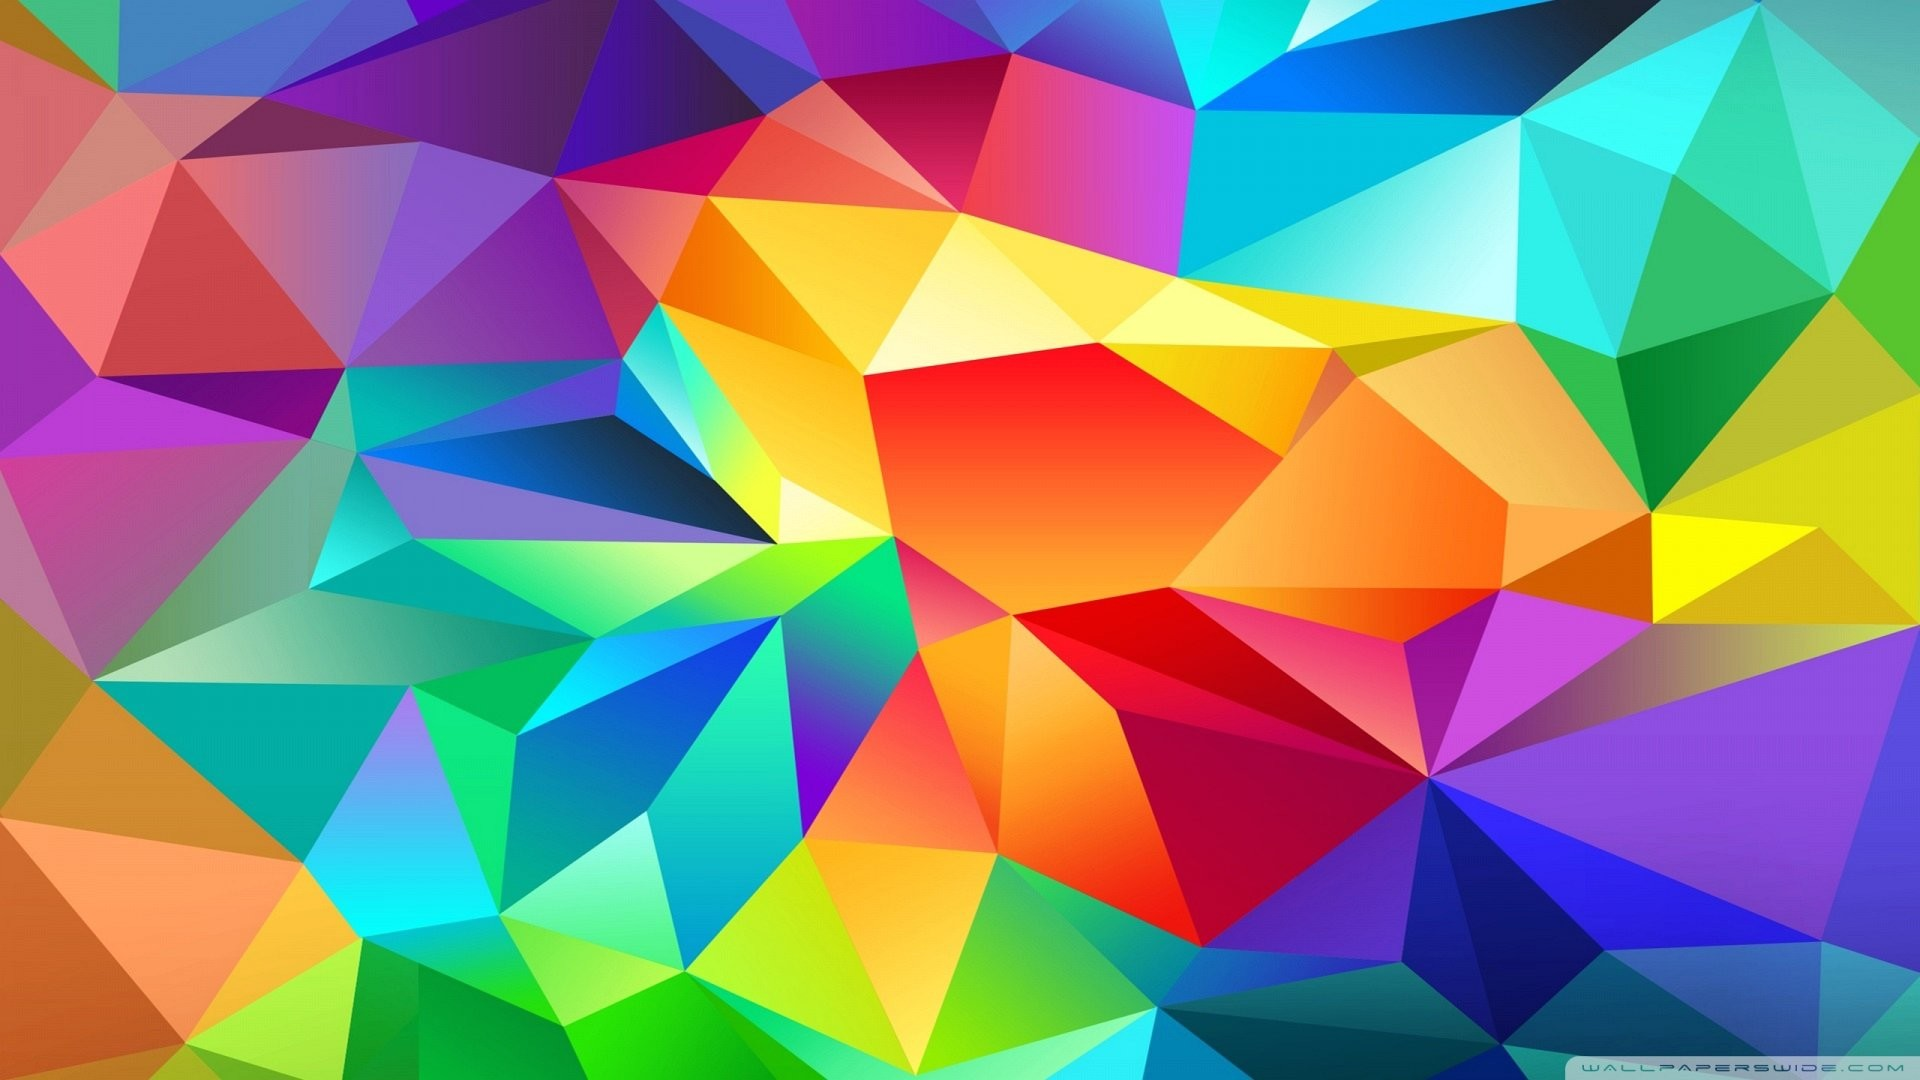 Res: 1920x1080, Colorful Abstract Wallpaper Phone For Wallpaper Idea